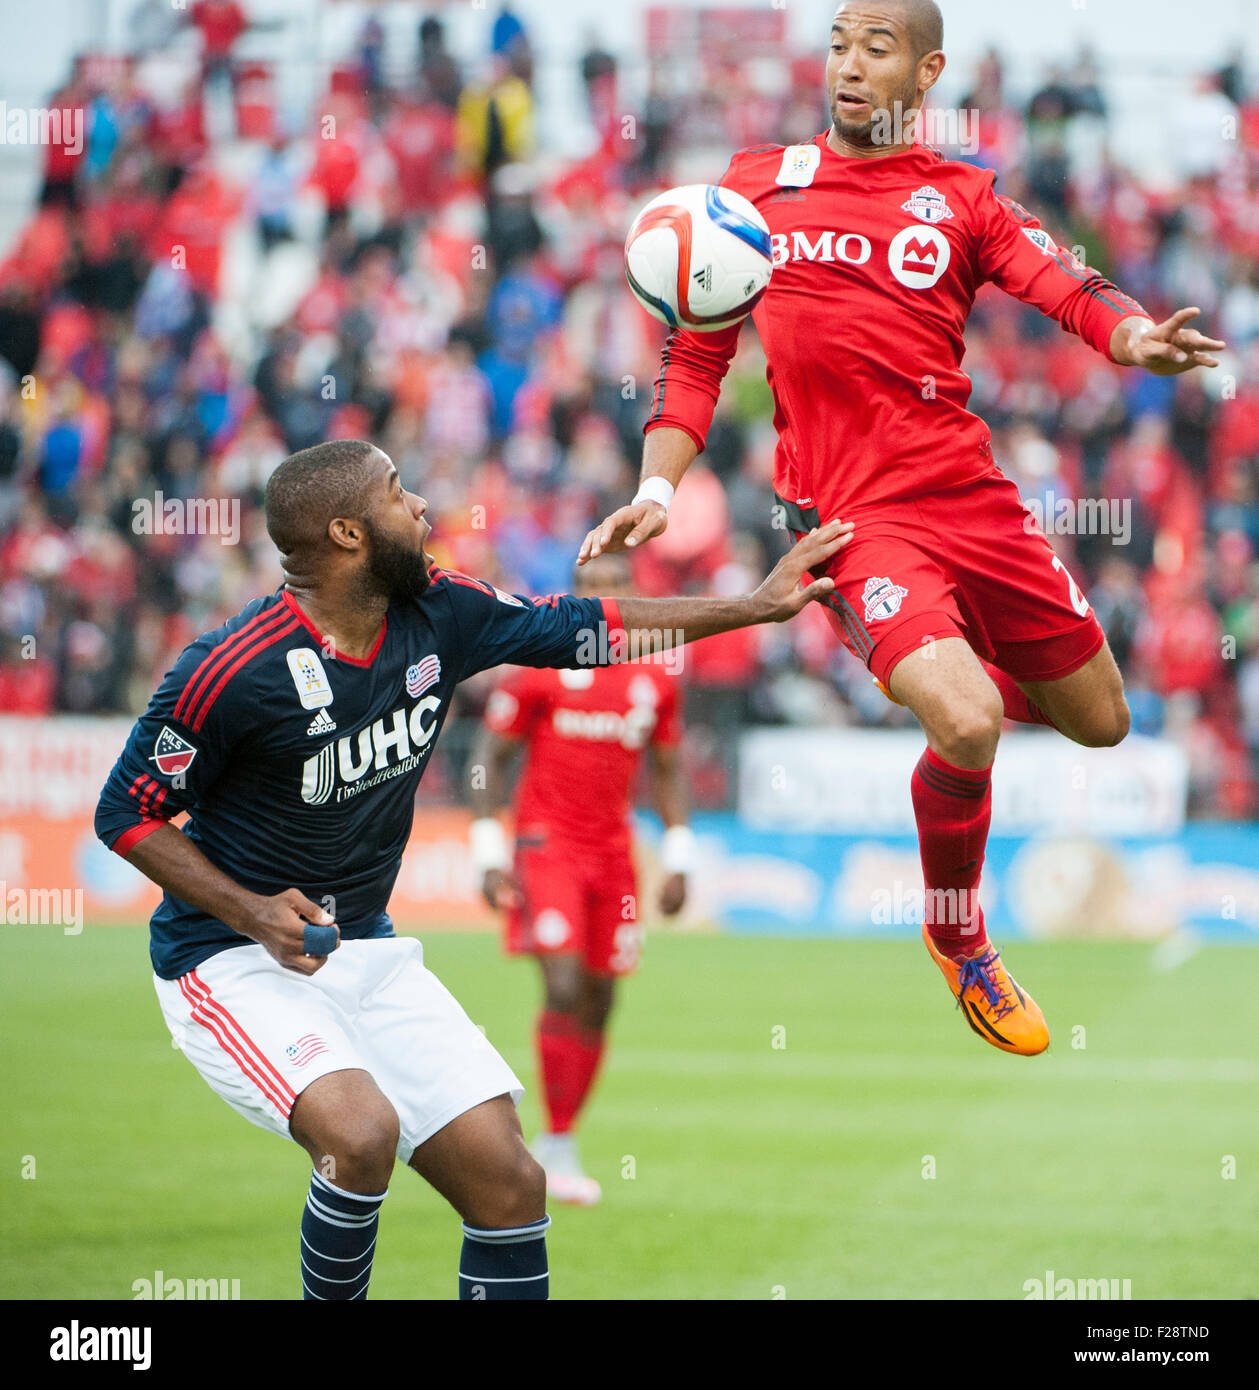 Toronto, Ontario, Canada. 13th September, 2015. Toronto FC defender Justin Morrow  (2) jumps to control the ball - Stock Image